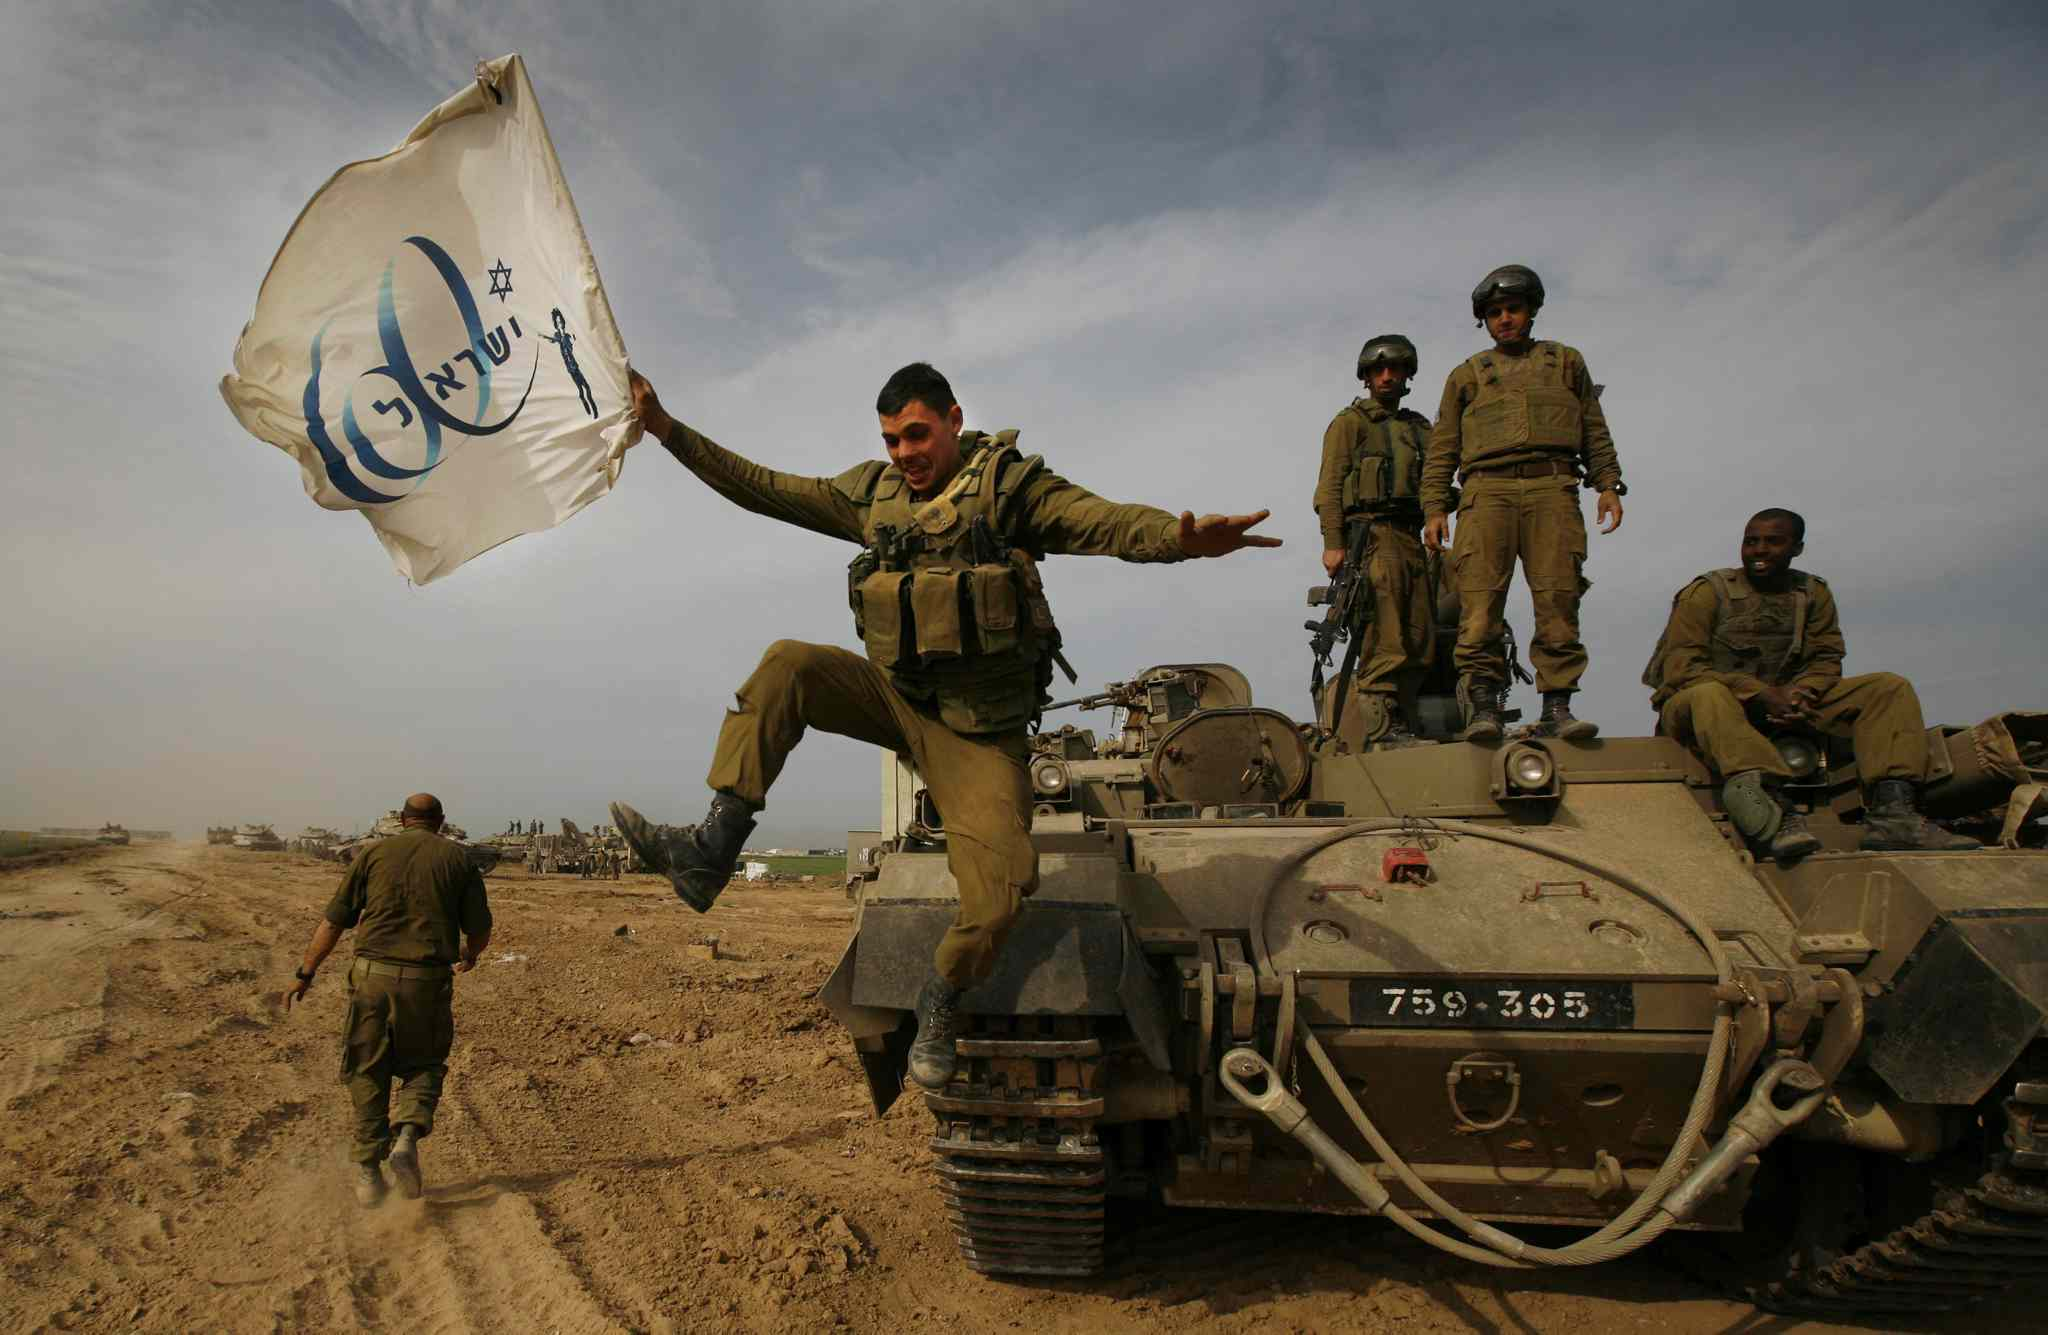 Friday, Jan. 16, 2009: An Israeli soldier jumps off an armored vehicle carrying a flag of Israel's 60th anniversary as he celebrates with his unit their return from the Gaza Strip on the Israeli side of the border.